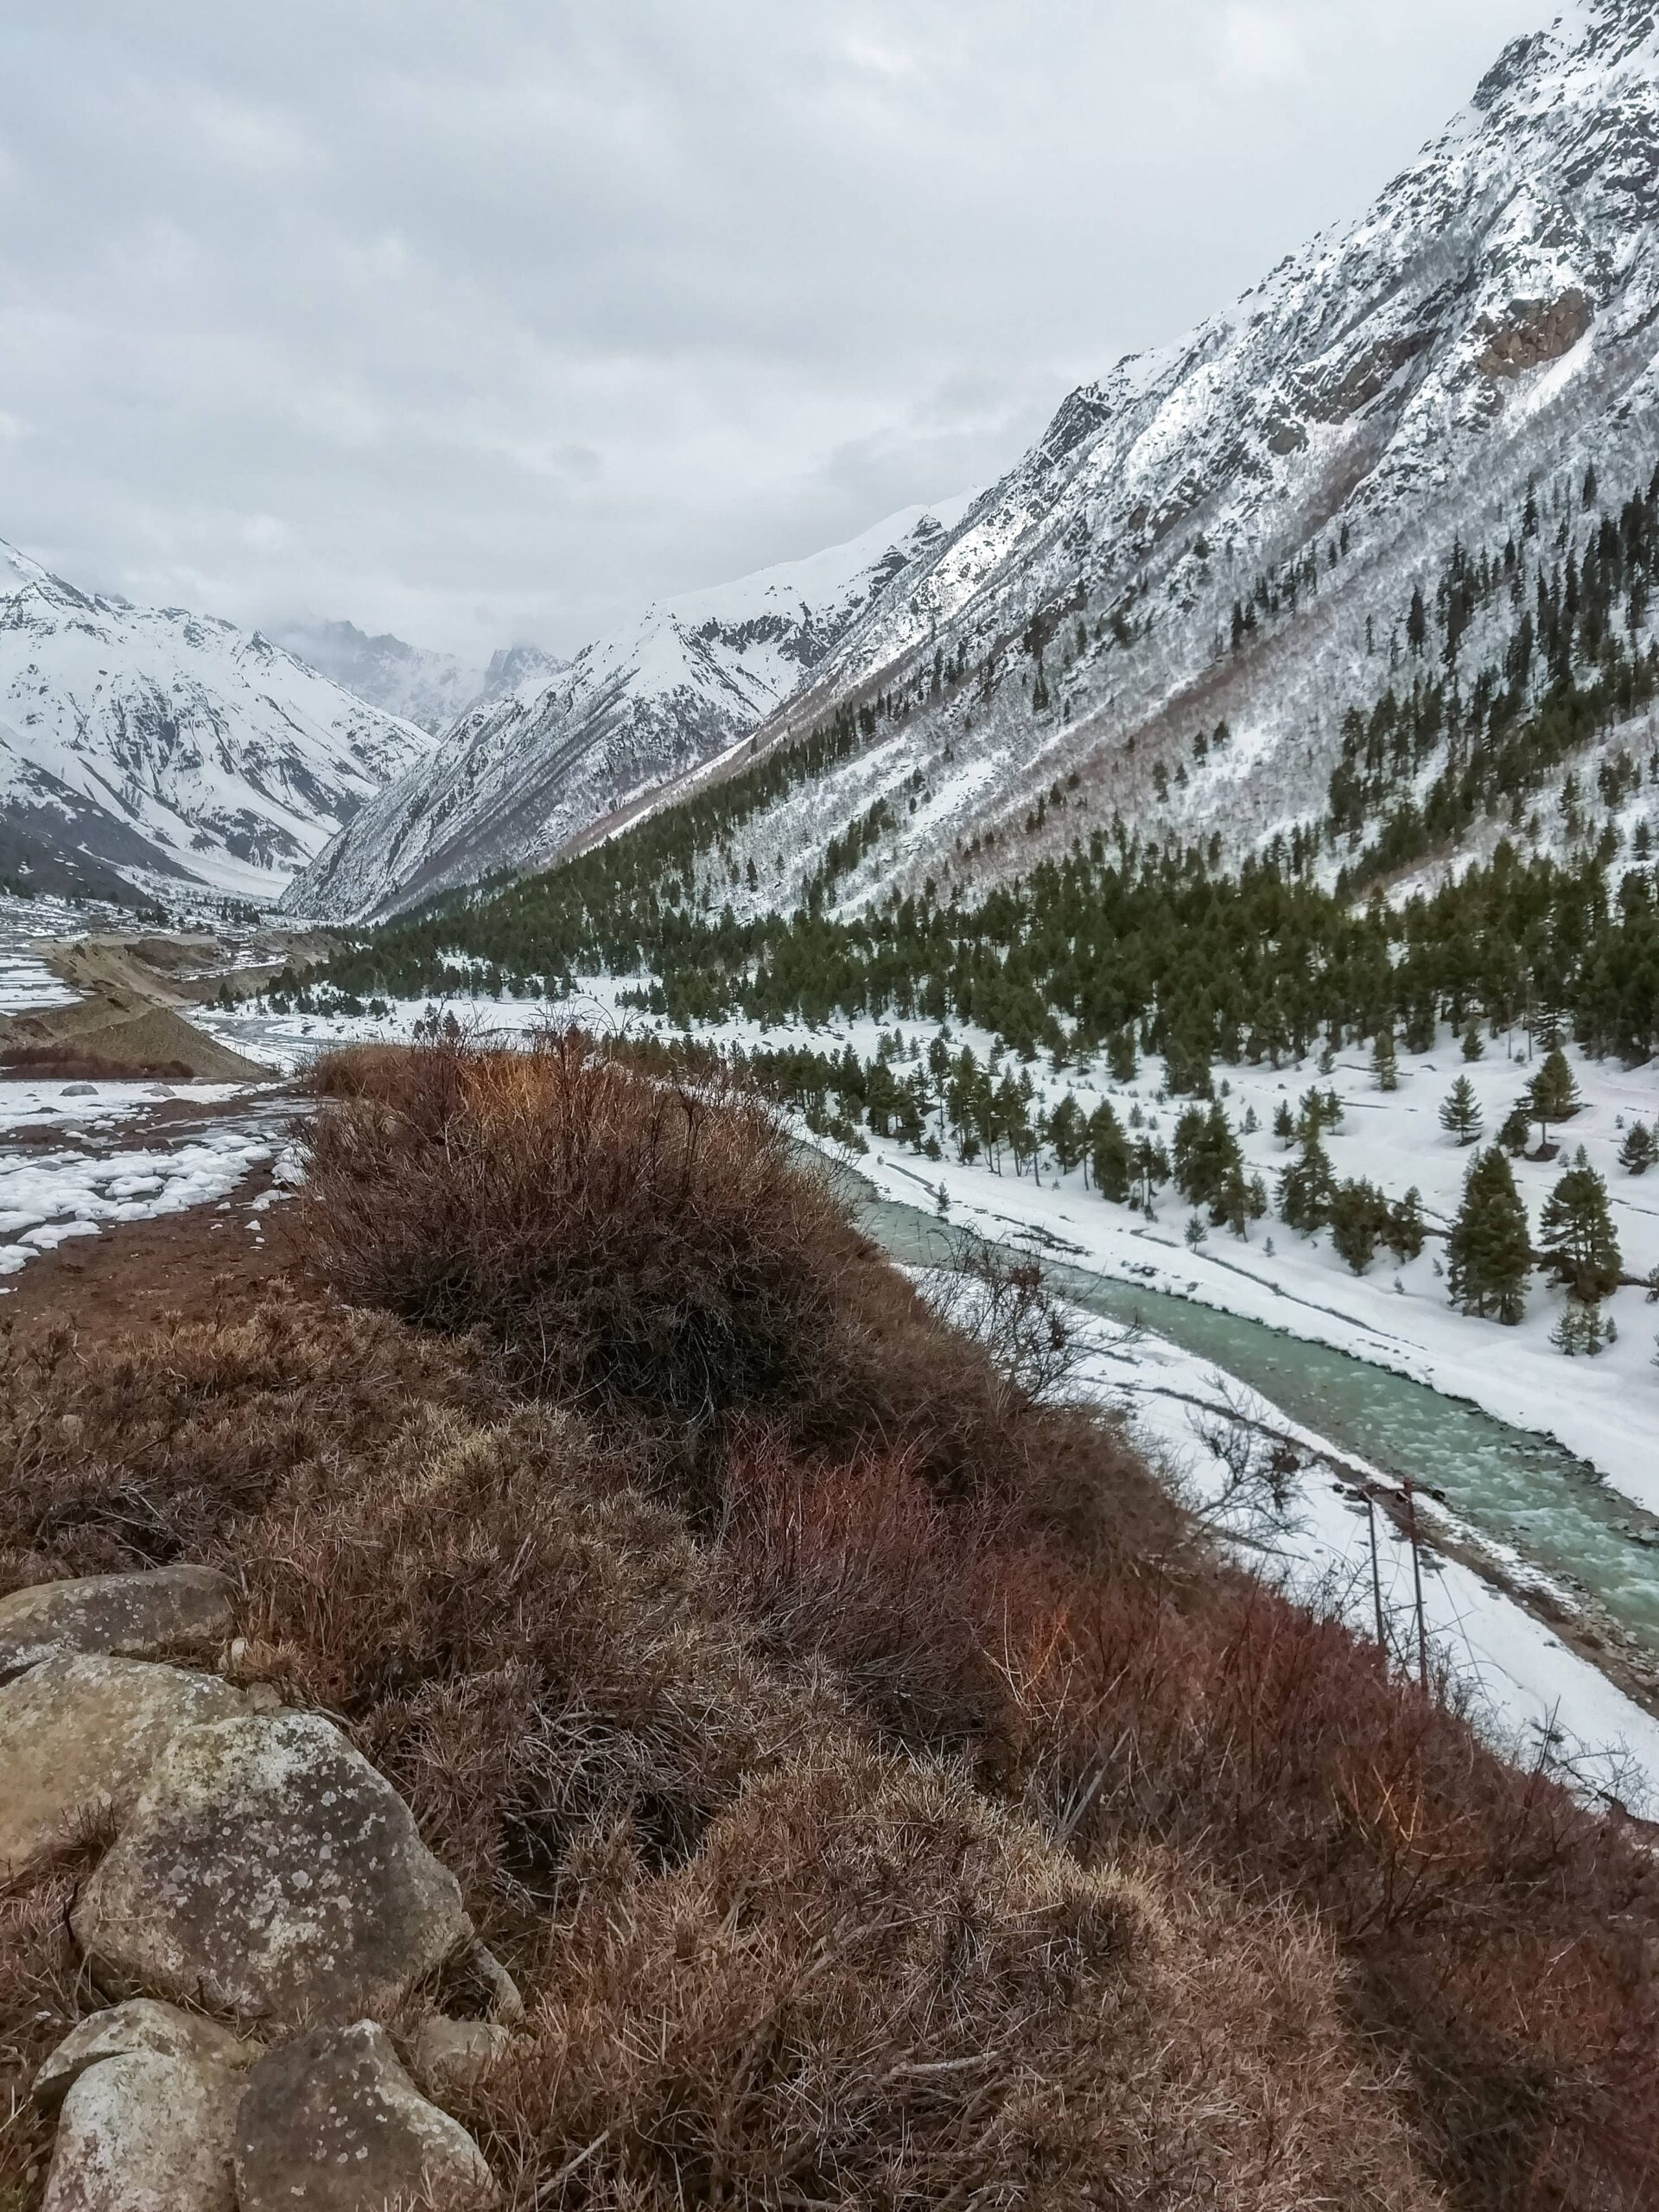 Chitkul in April full of snow & landscape beauty